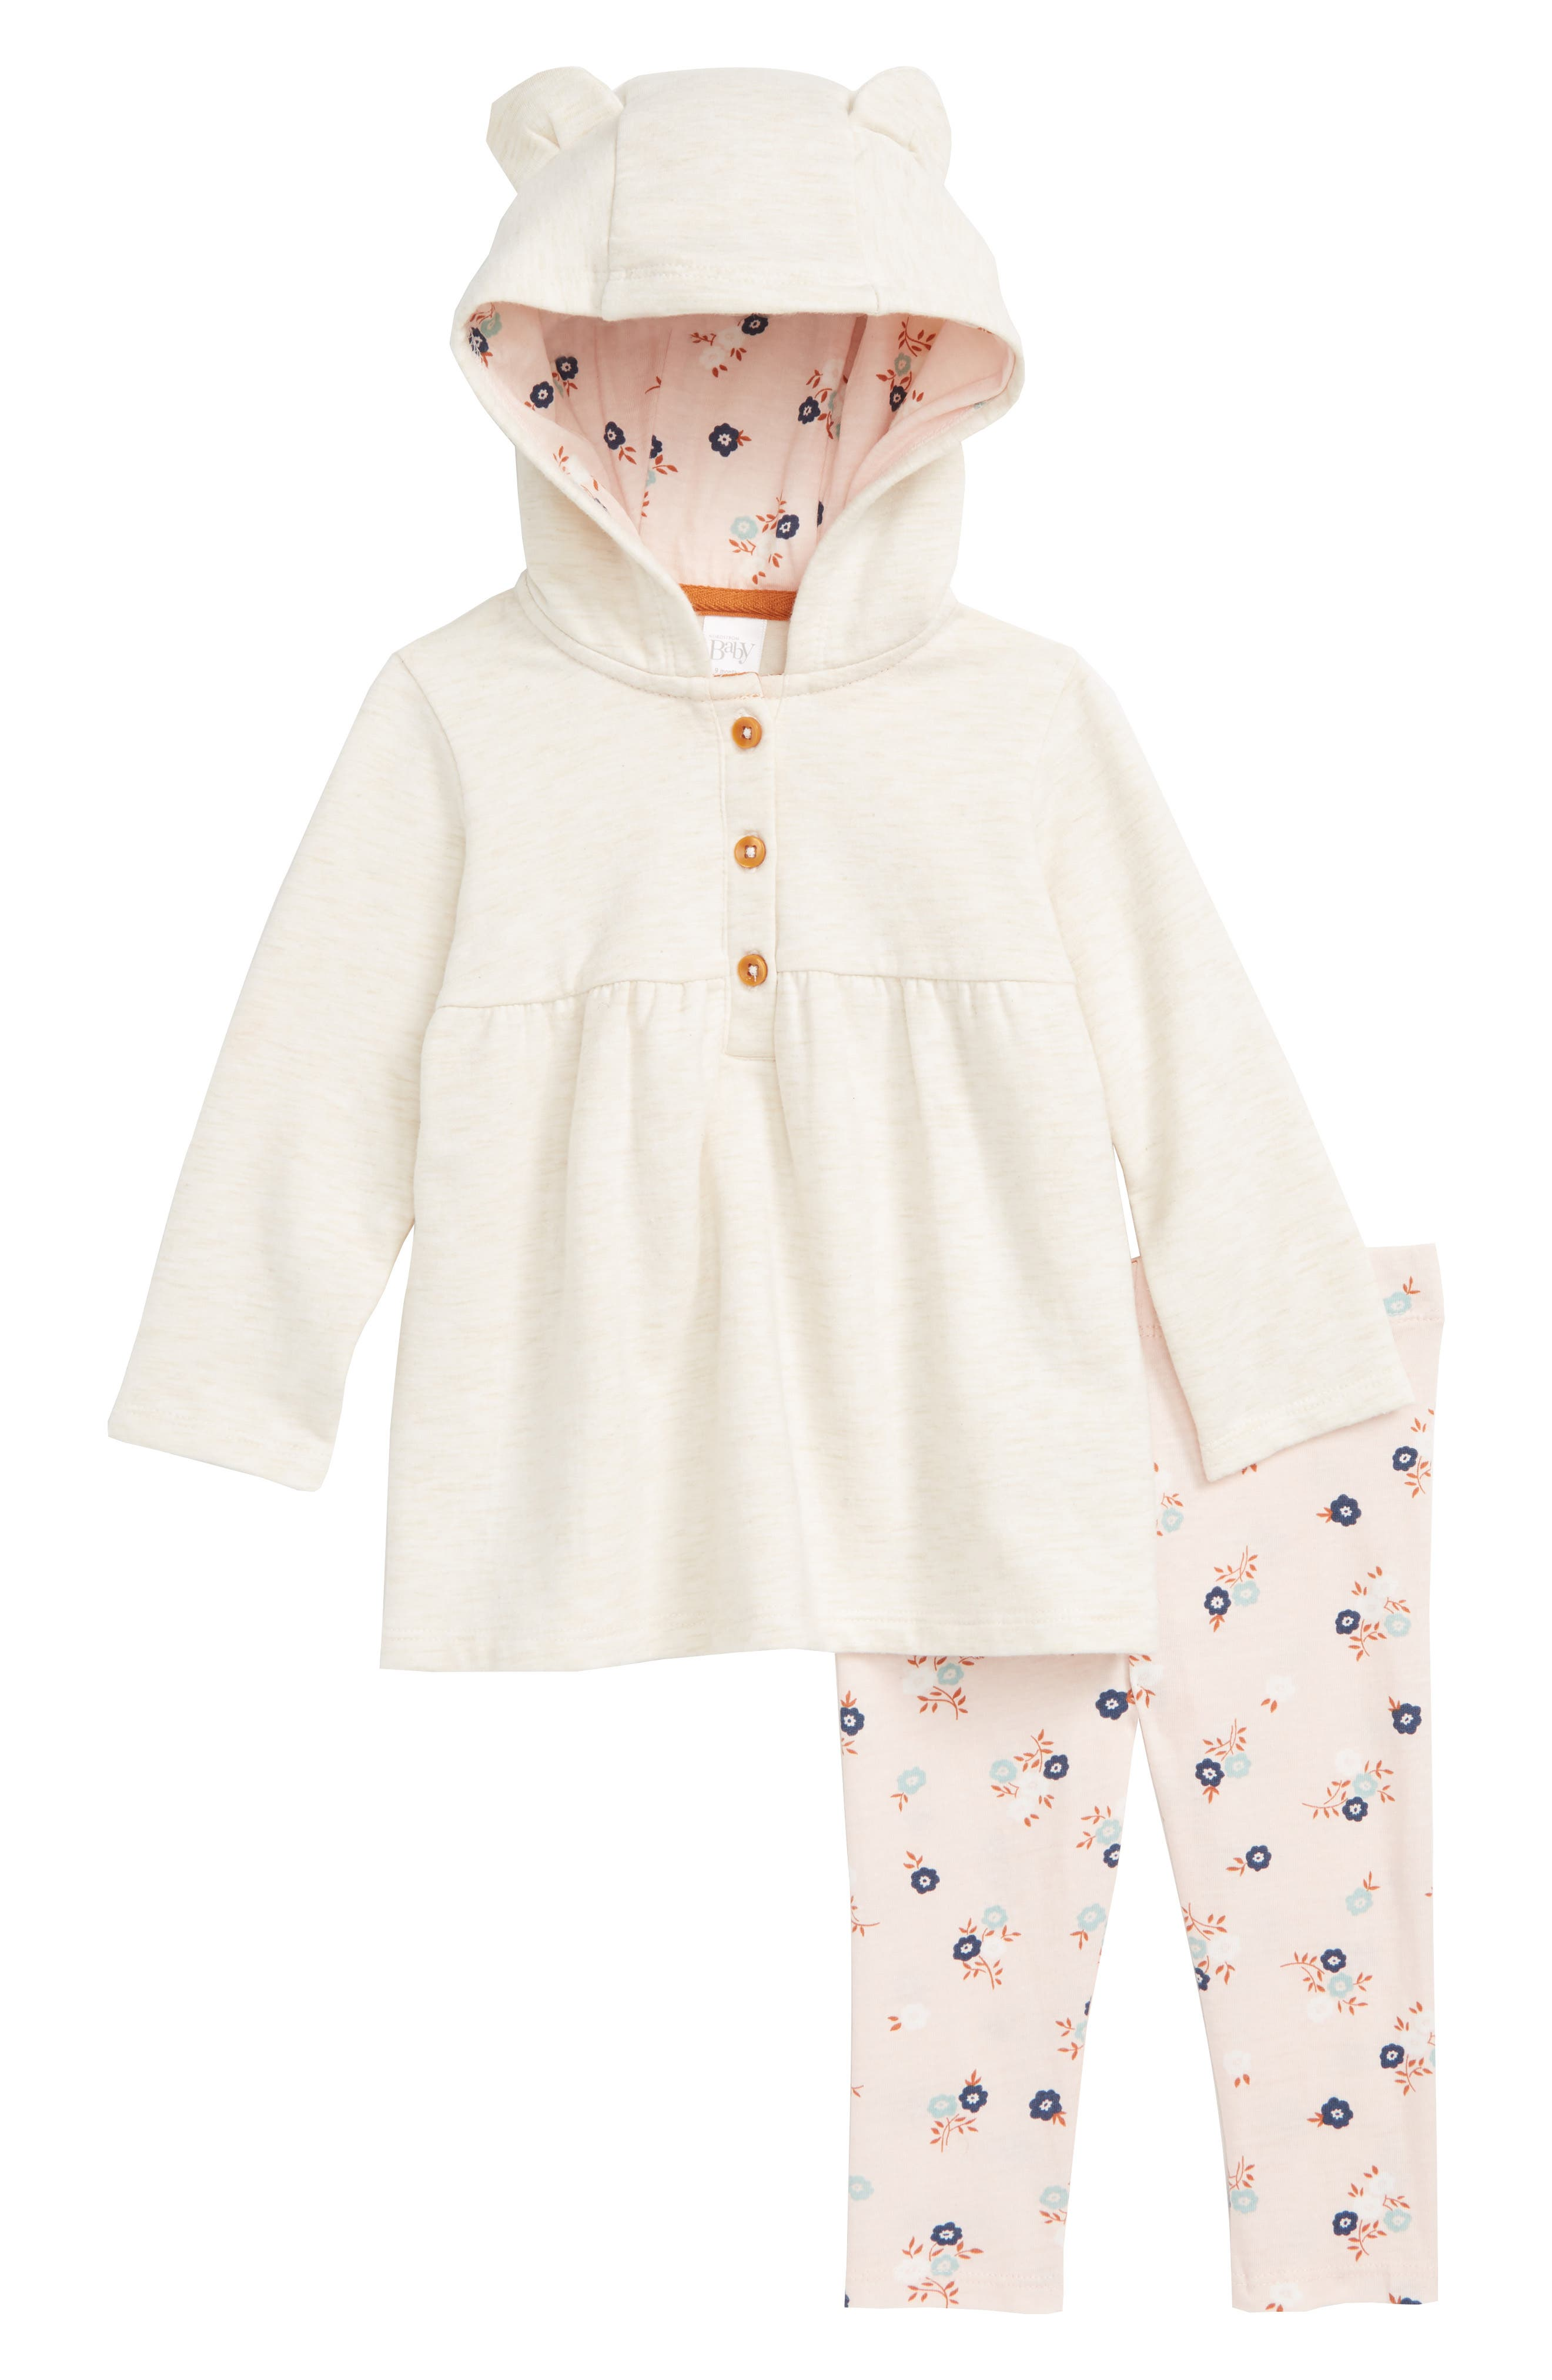 b6388acec0 Baby Unisex Hooded Dressing Gown White Moon and Star Design Dream Big  Little One